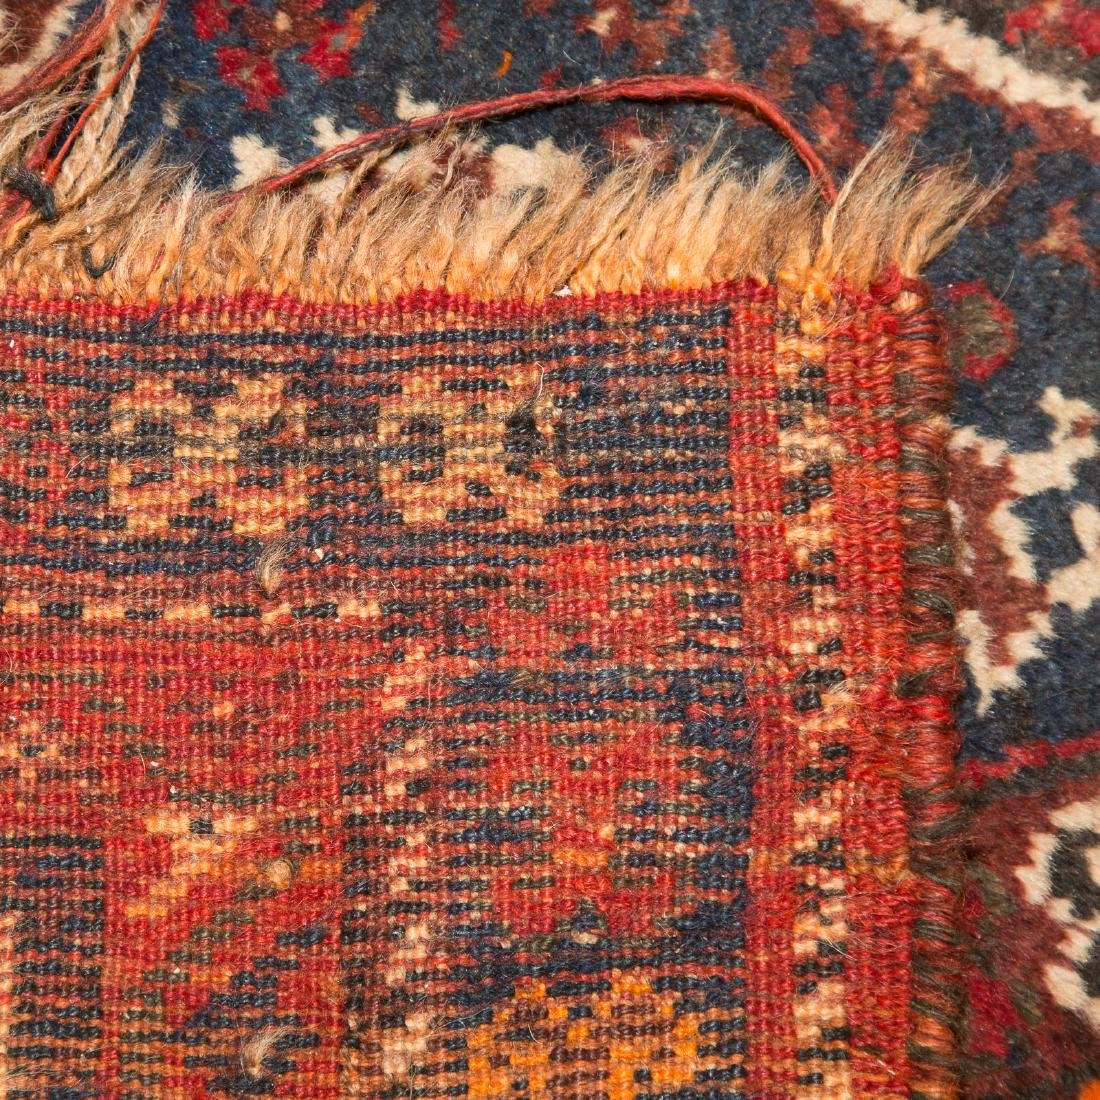 Antique Shiraz rug, approx. 7.8 x 10.4 - 3